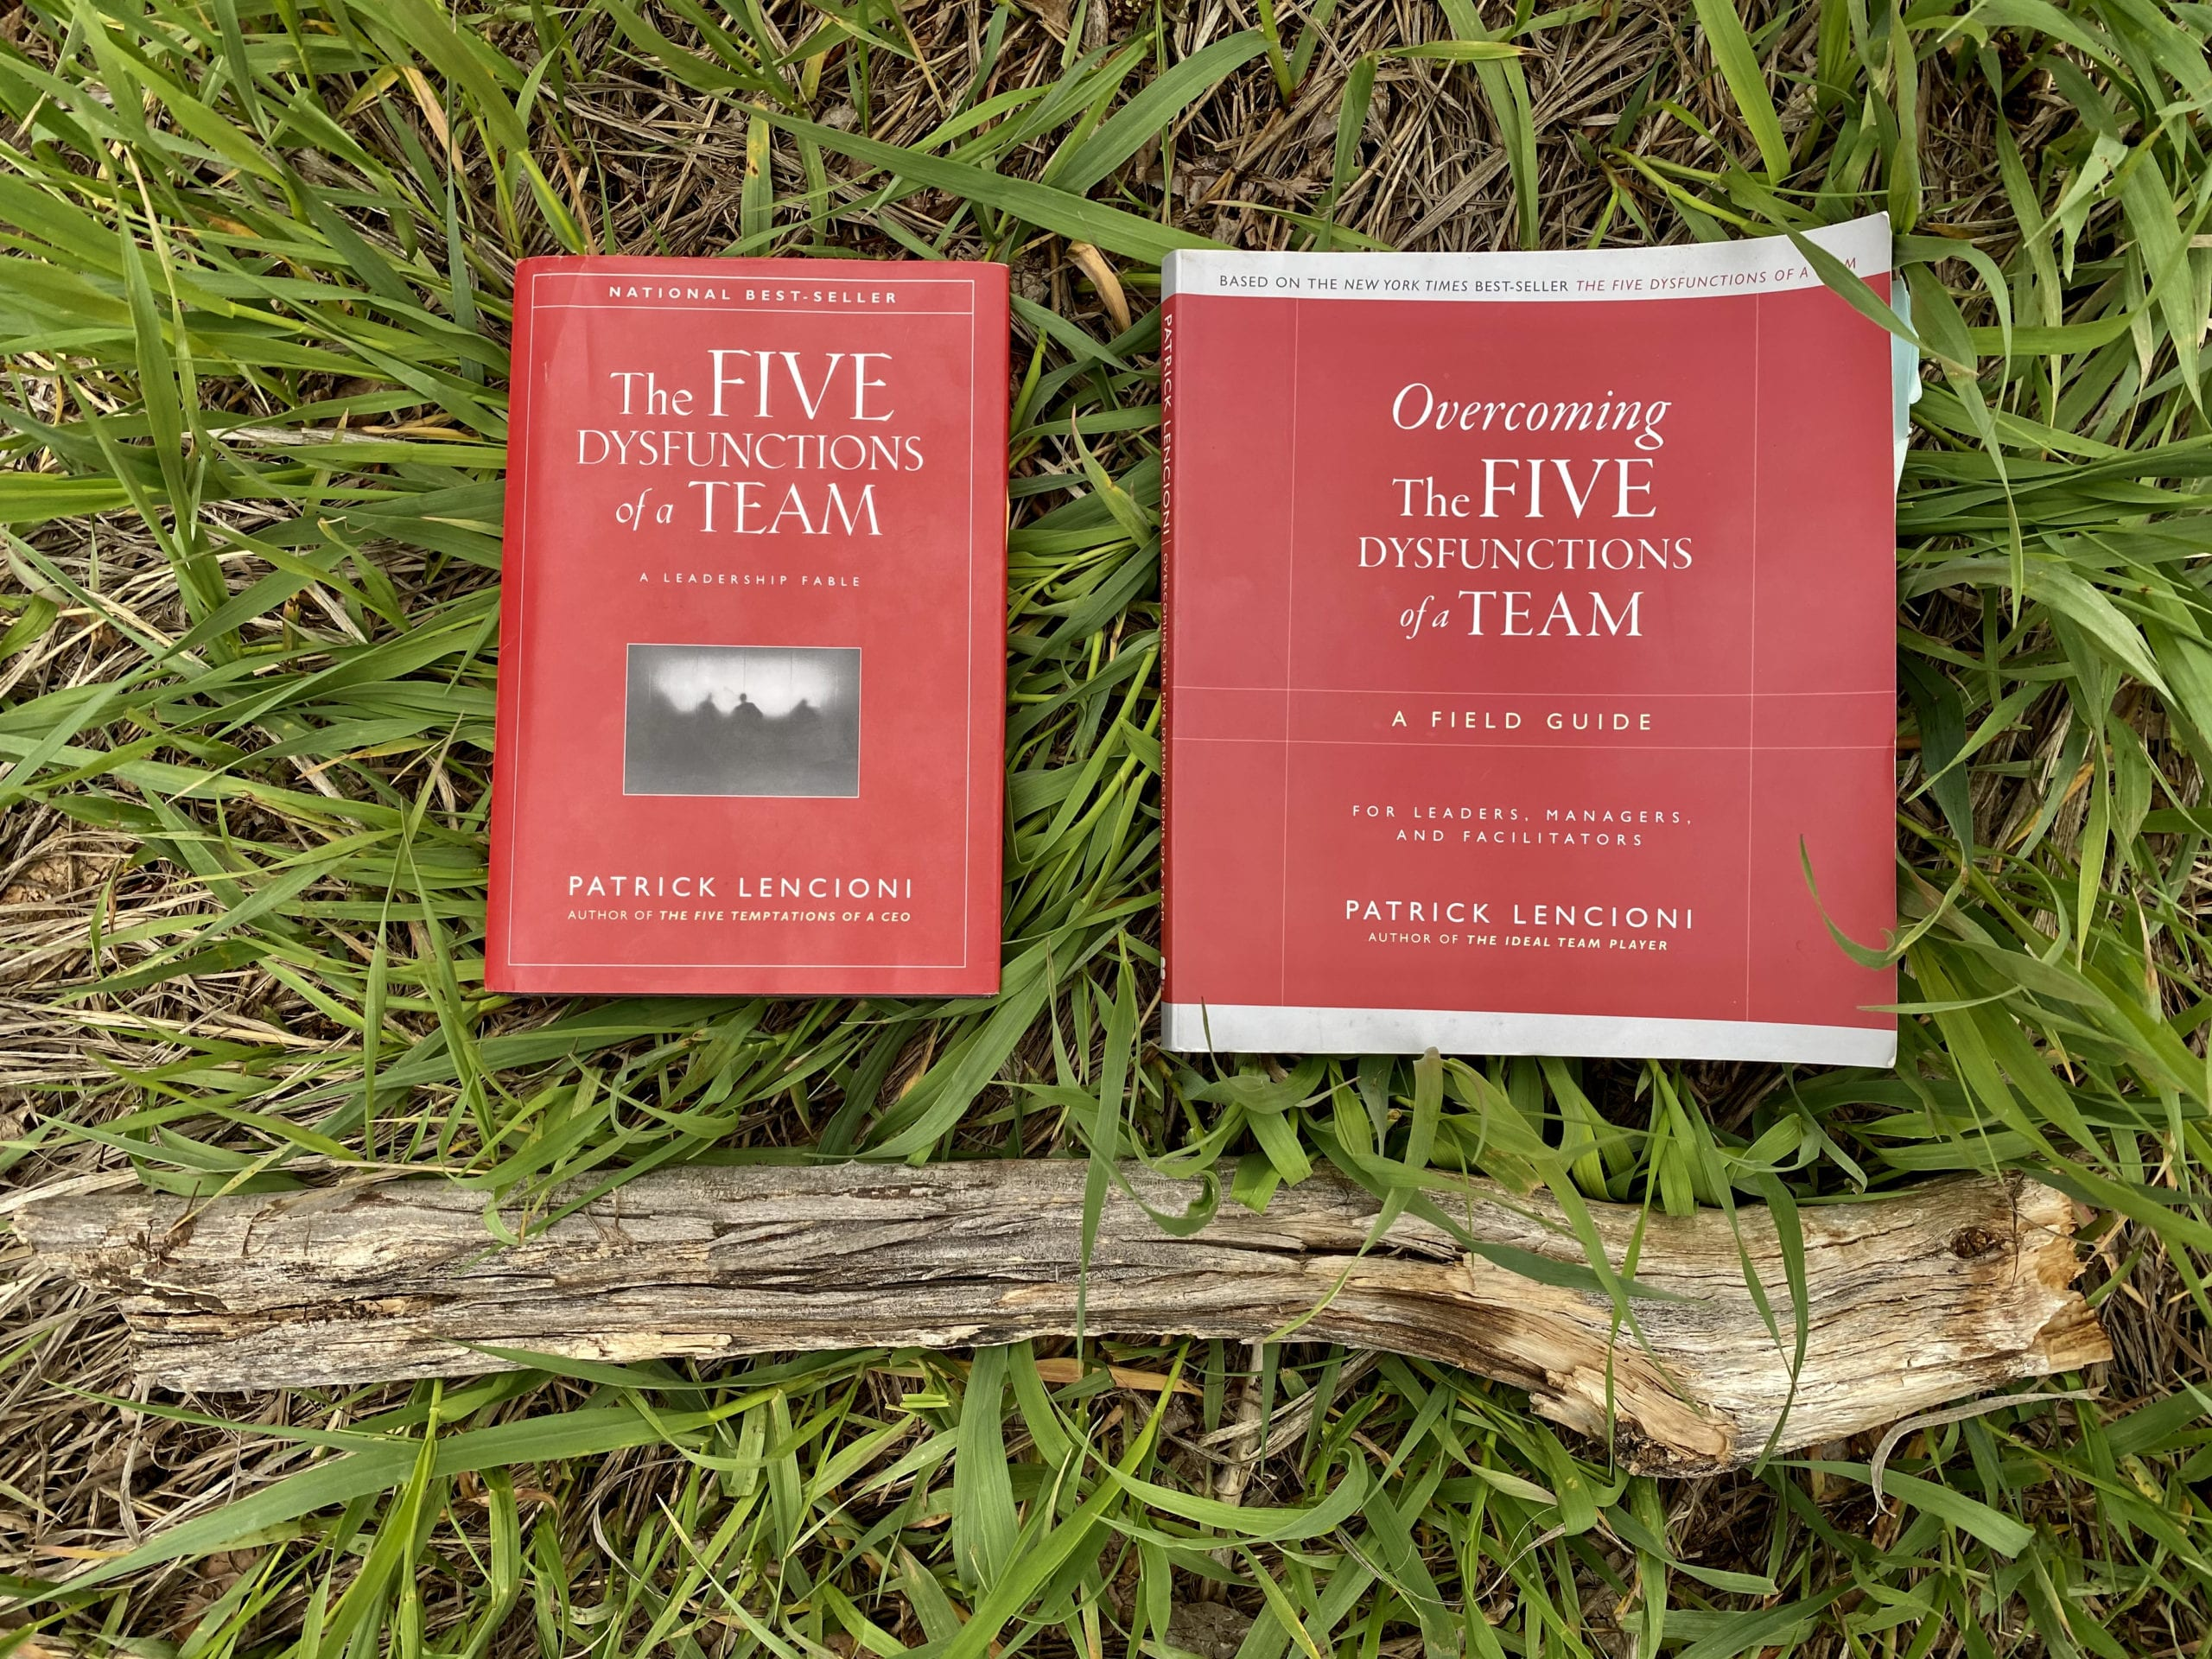 Five Dysfunctions of a Team - Book Photo on Grass